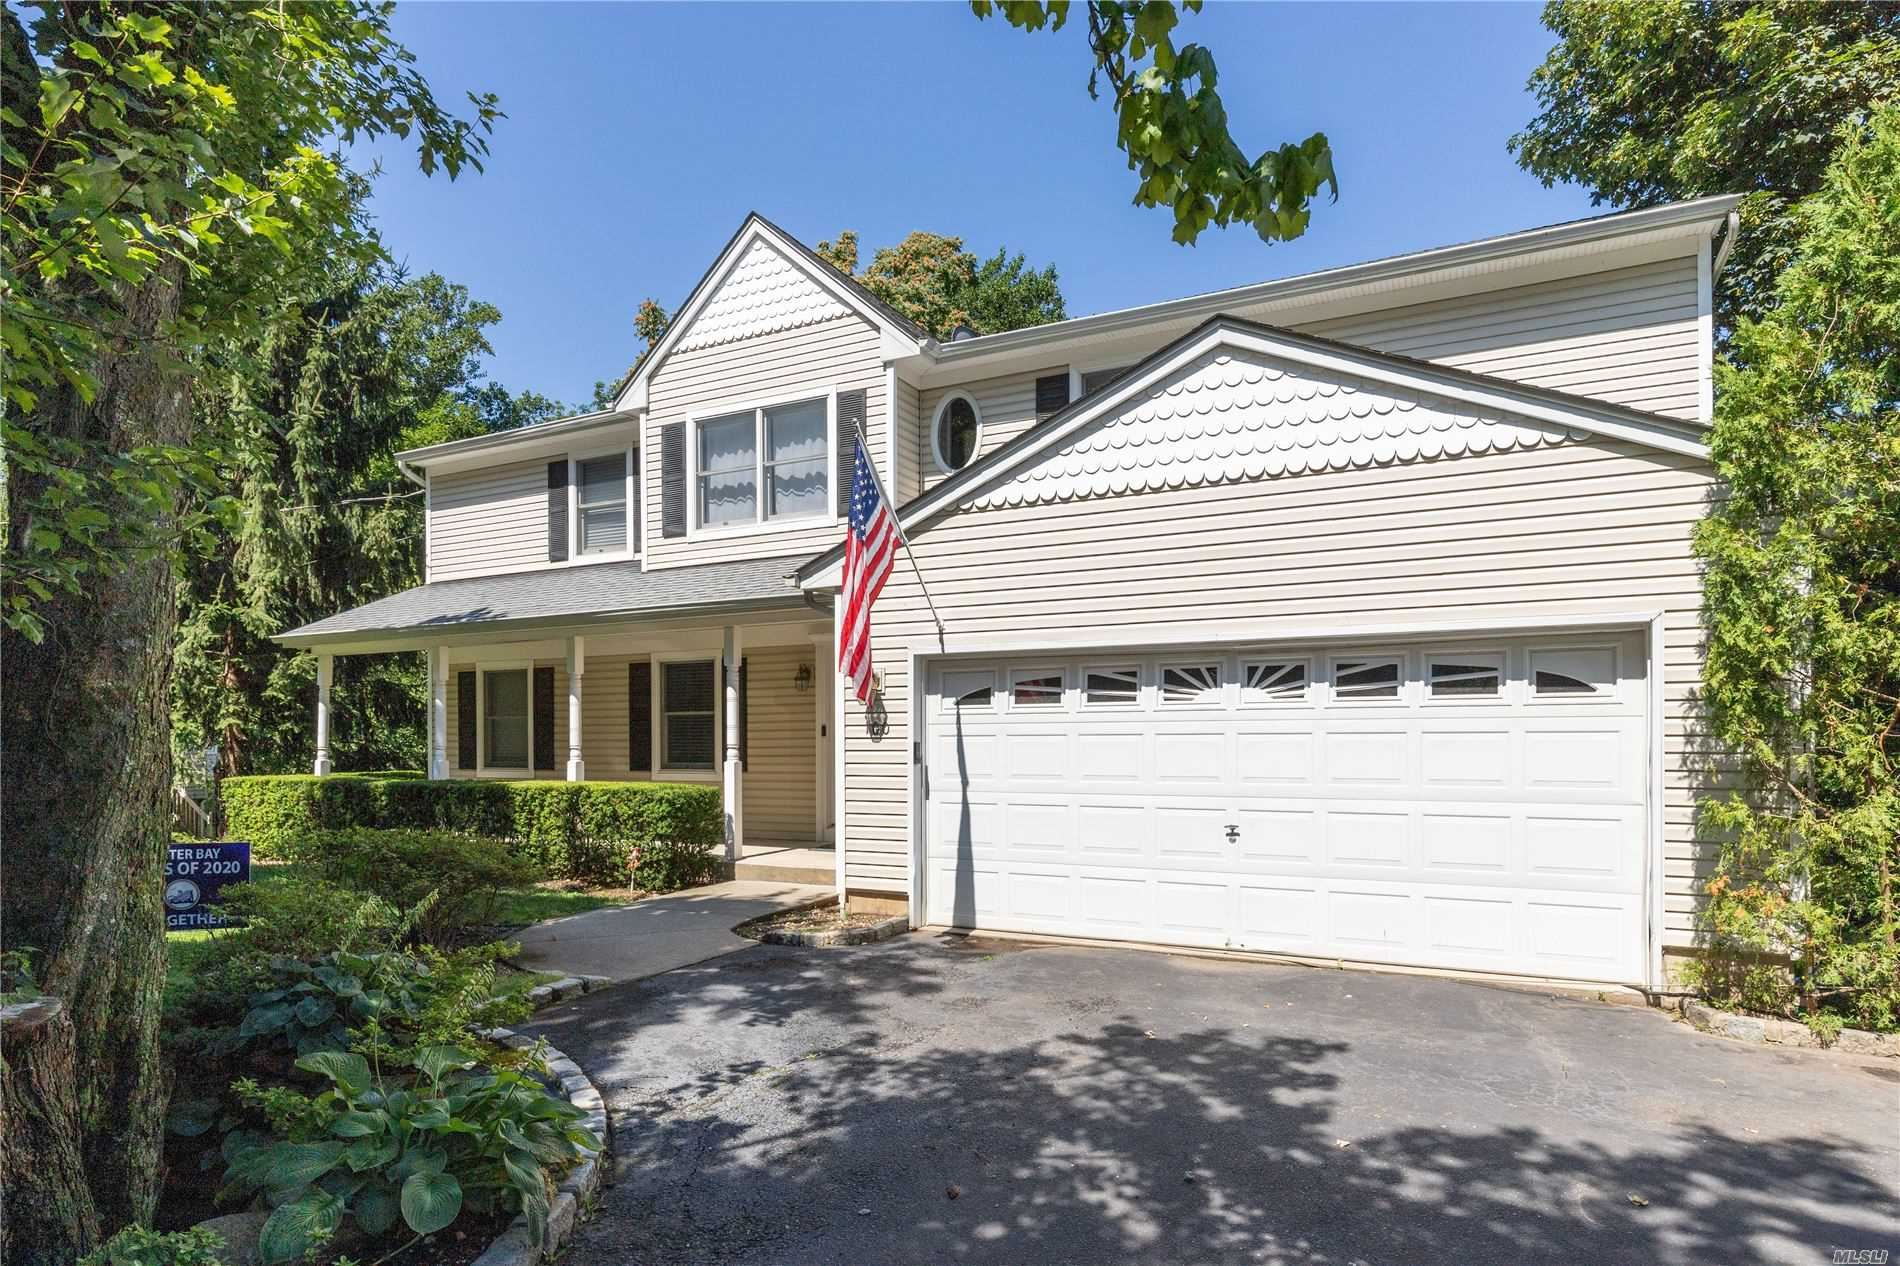 Photo of 100 Mill River Road, Oyster Bay, NY 11771 (MLS # 3239958)